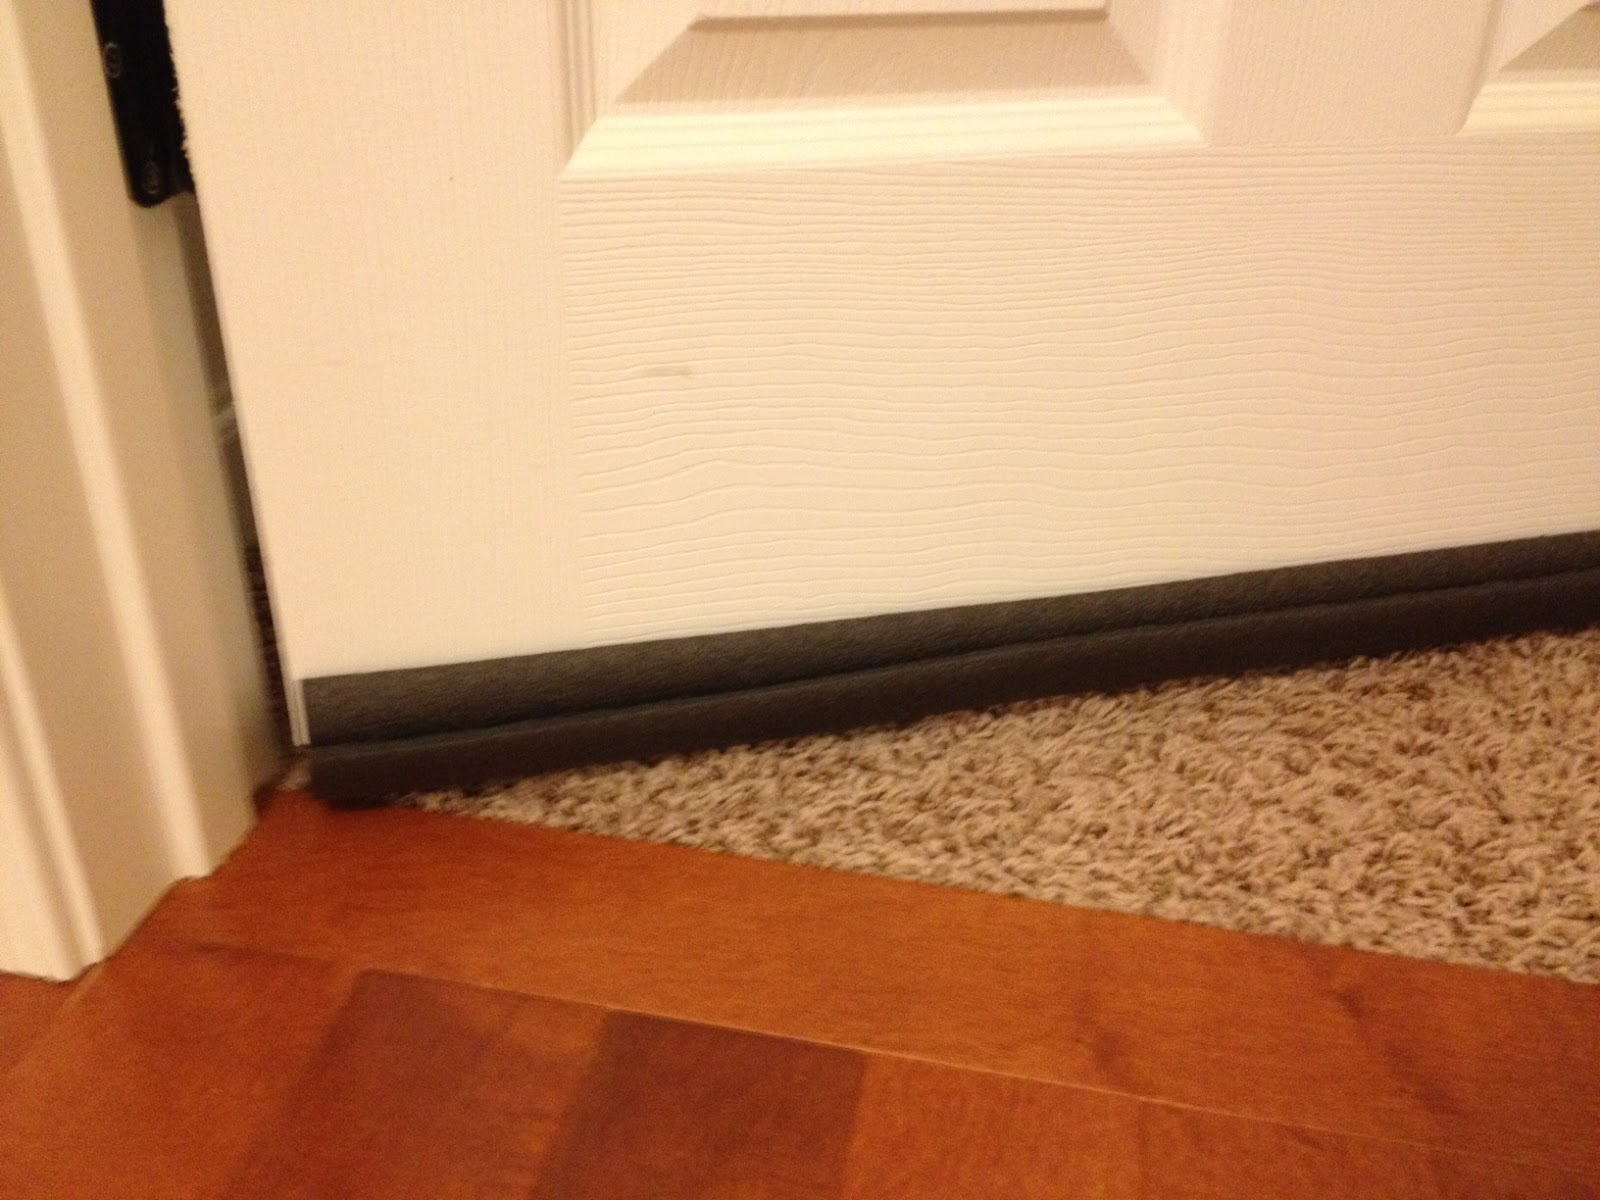 Velezita Frugal Lazy Fix For Builder Grade Doors With Big Gaps At The Bottom